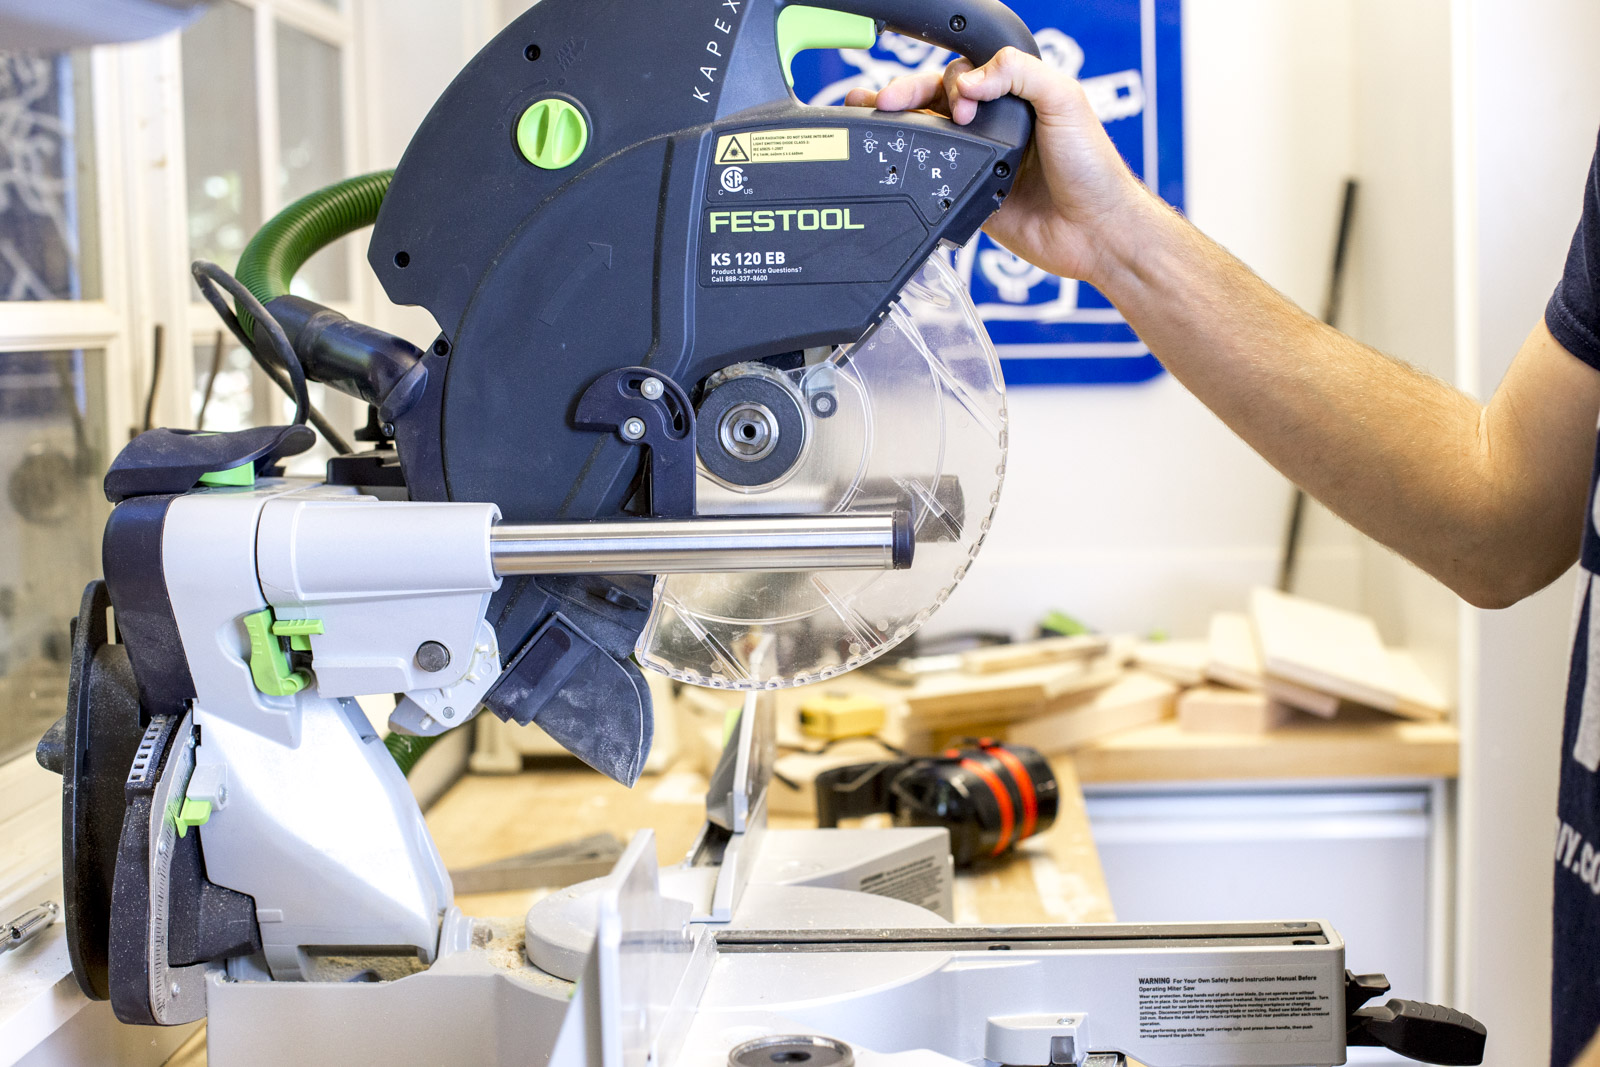 How to use a chop saw miter saw diy tips greentooth Images